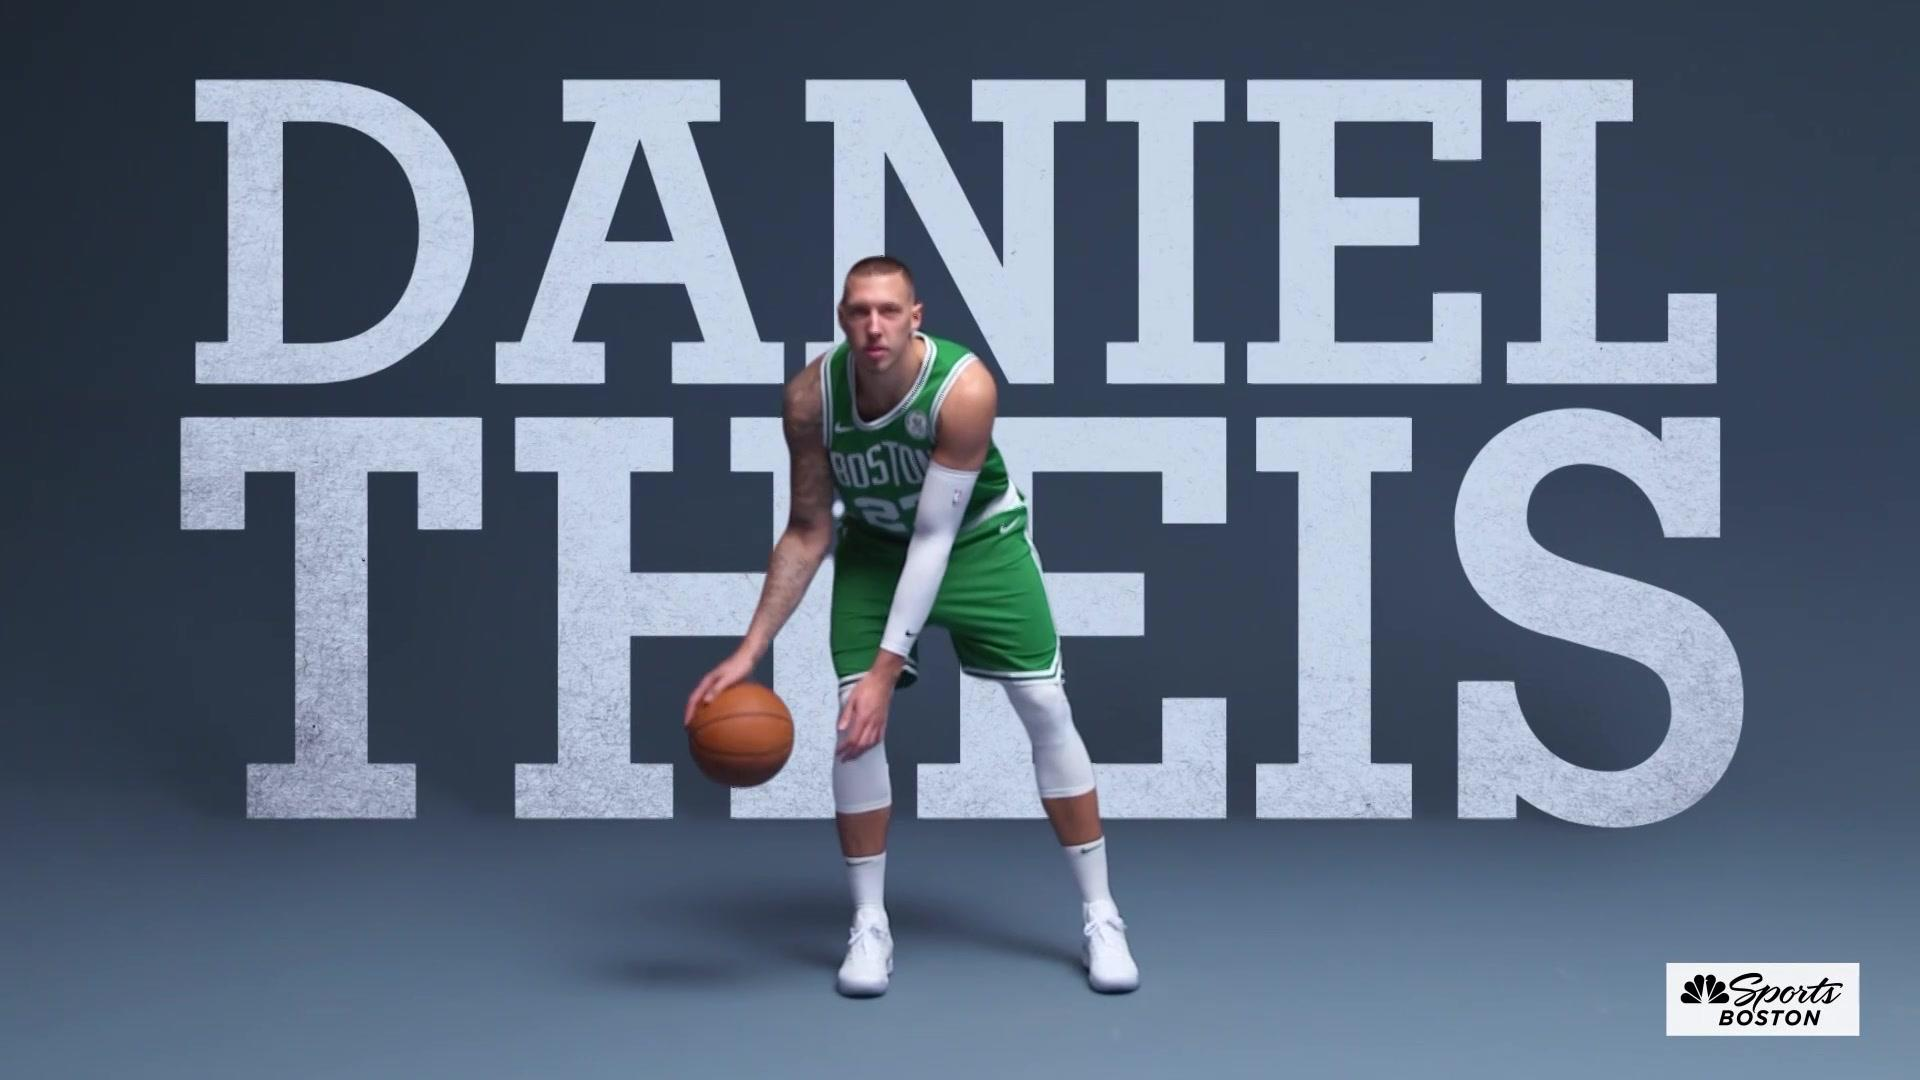 Daniel Theis slams it home with a two-handed dunk